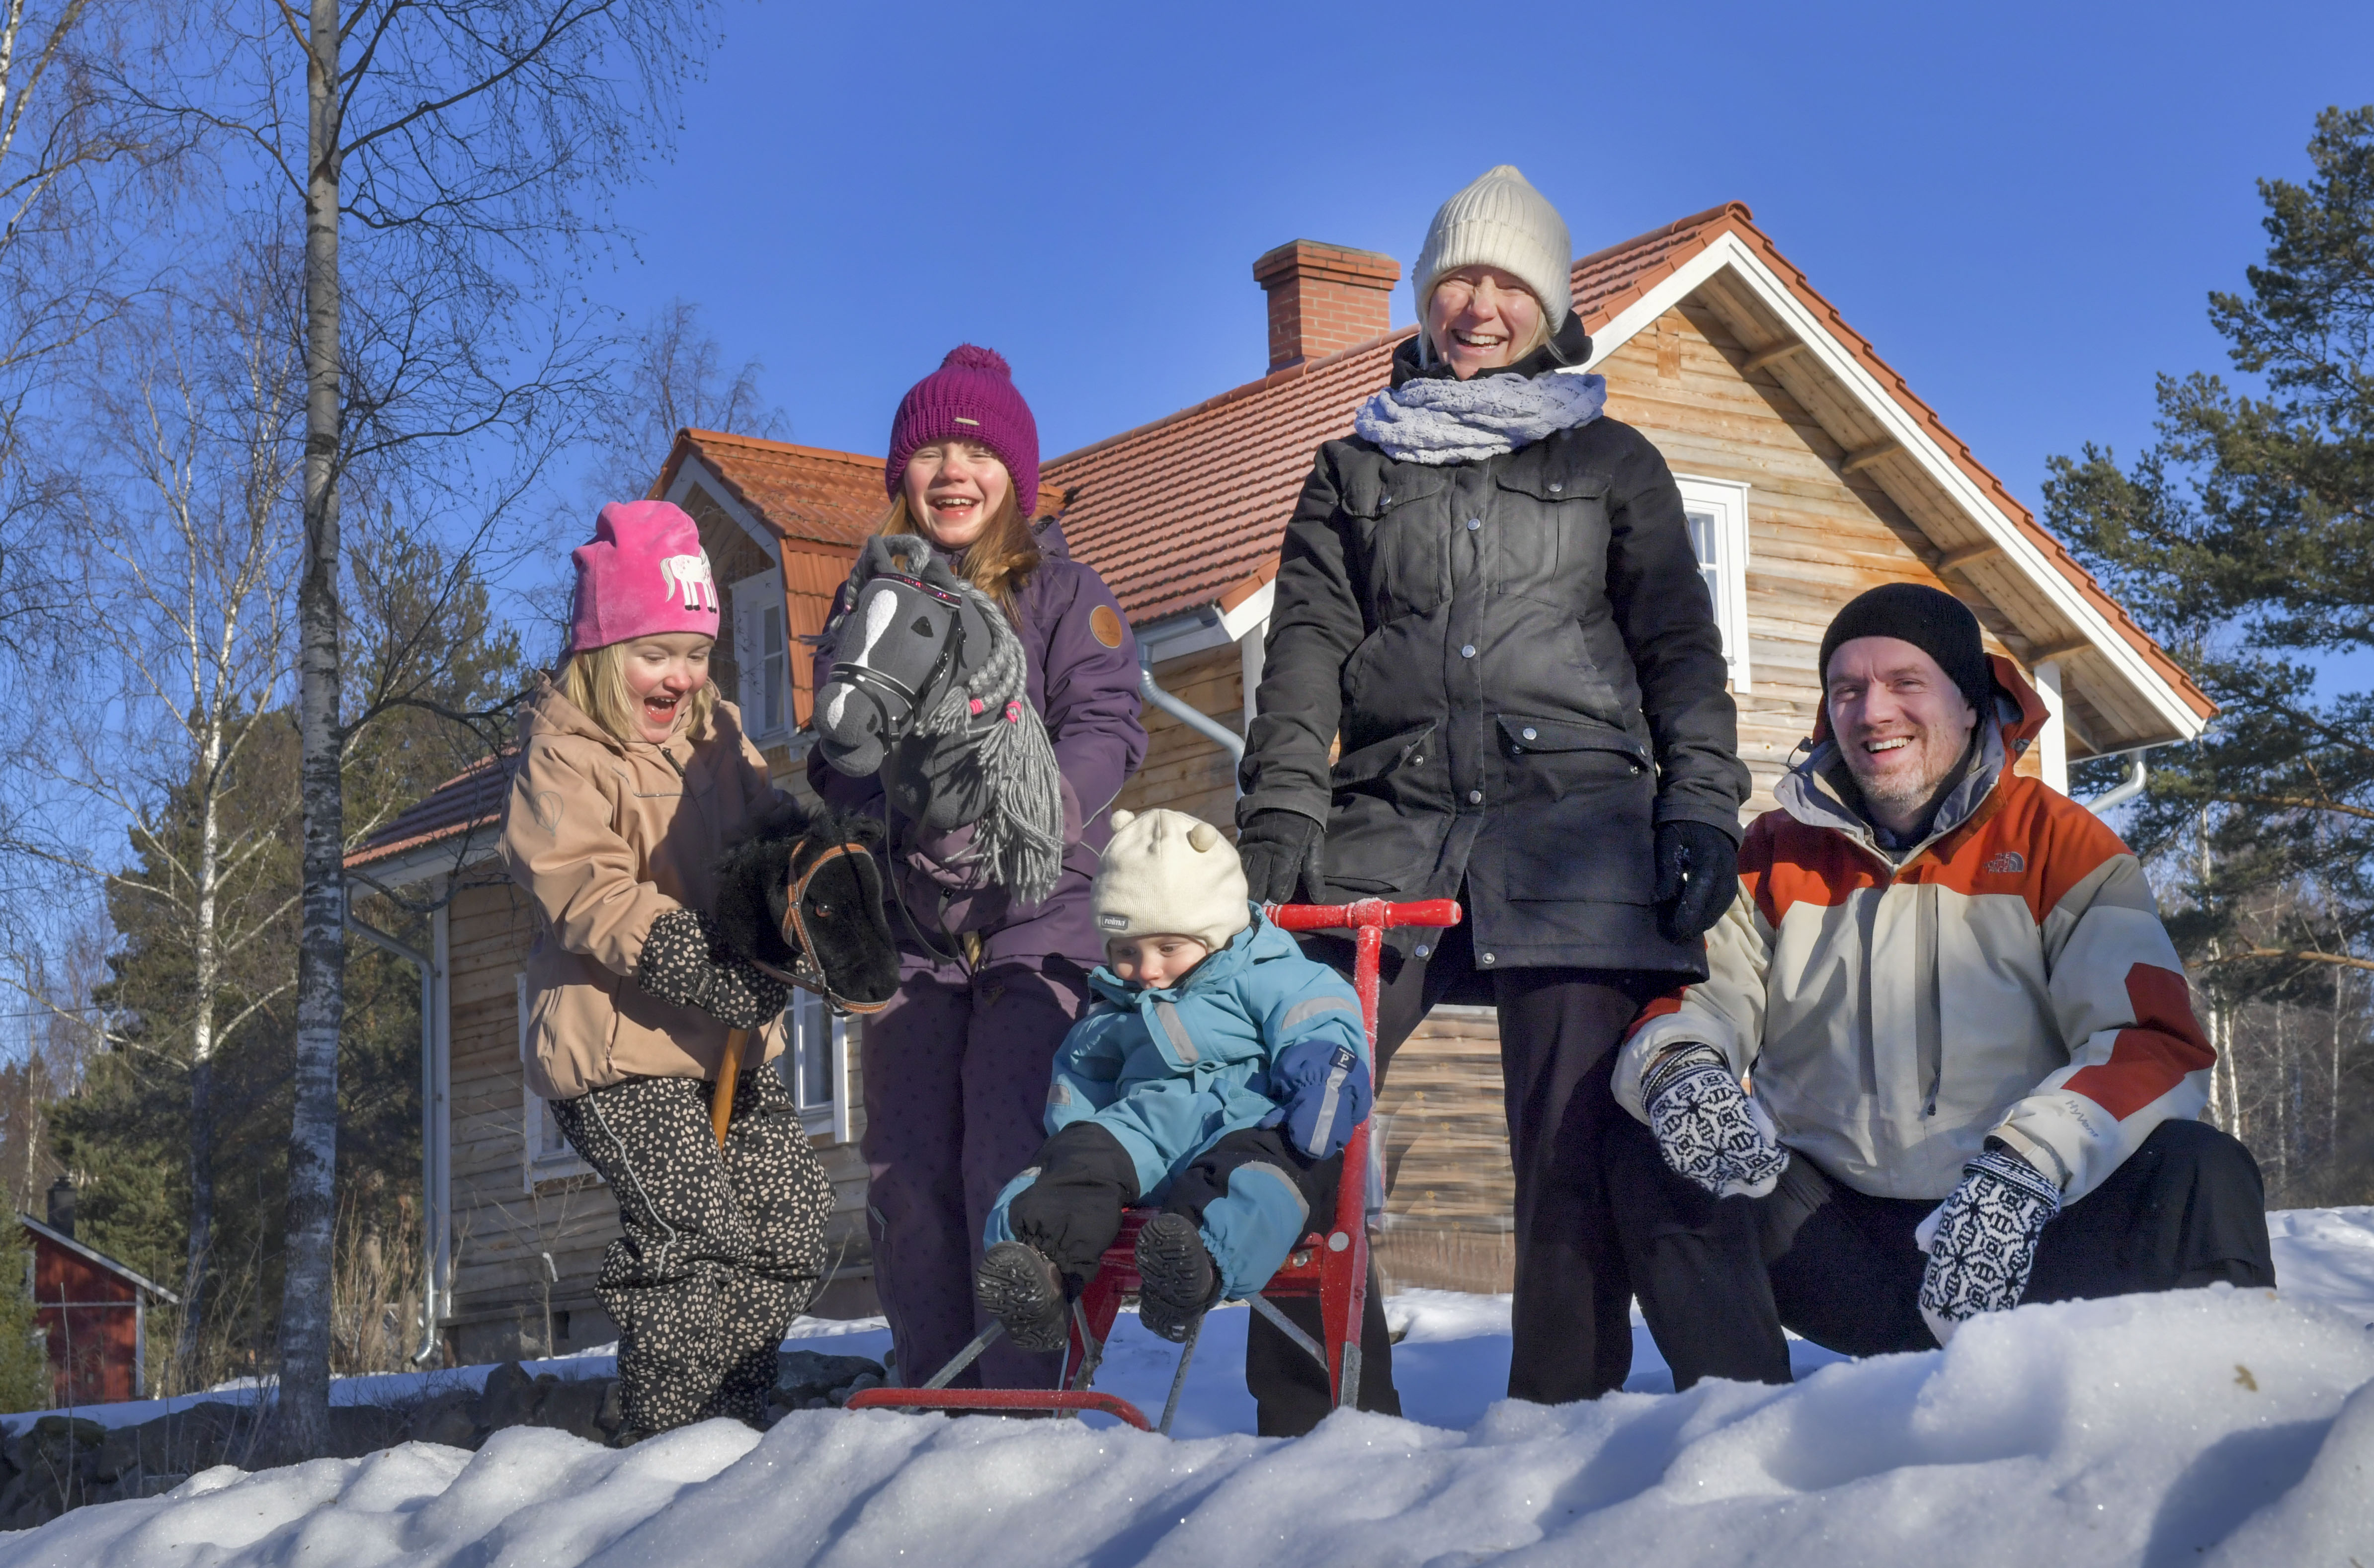 Pilvia started as Sami Niemi's passion project and the family has grown since. From left: Kerttu, Helmi, Anton, Lotta and Sami Niemi.